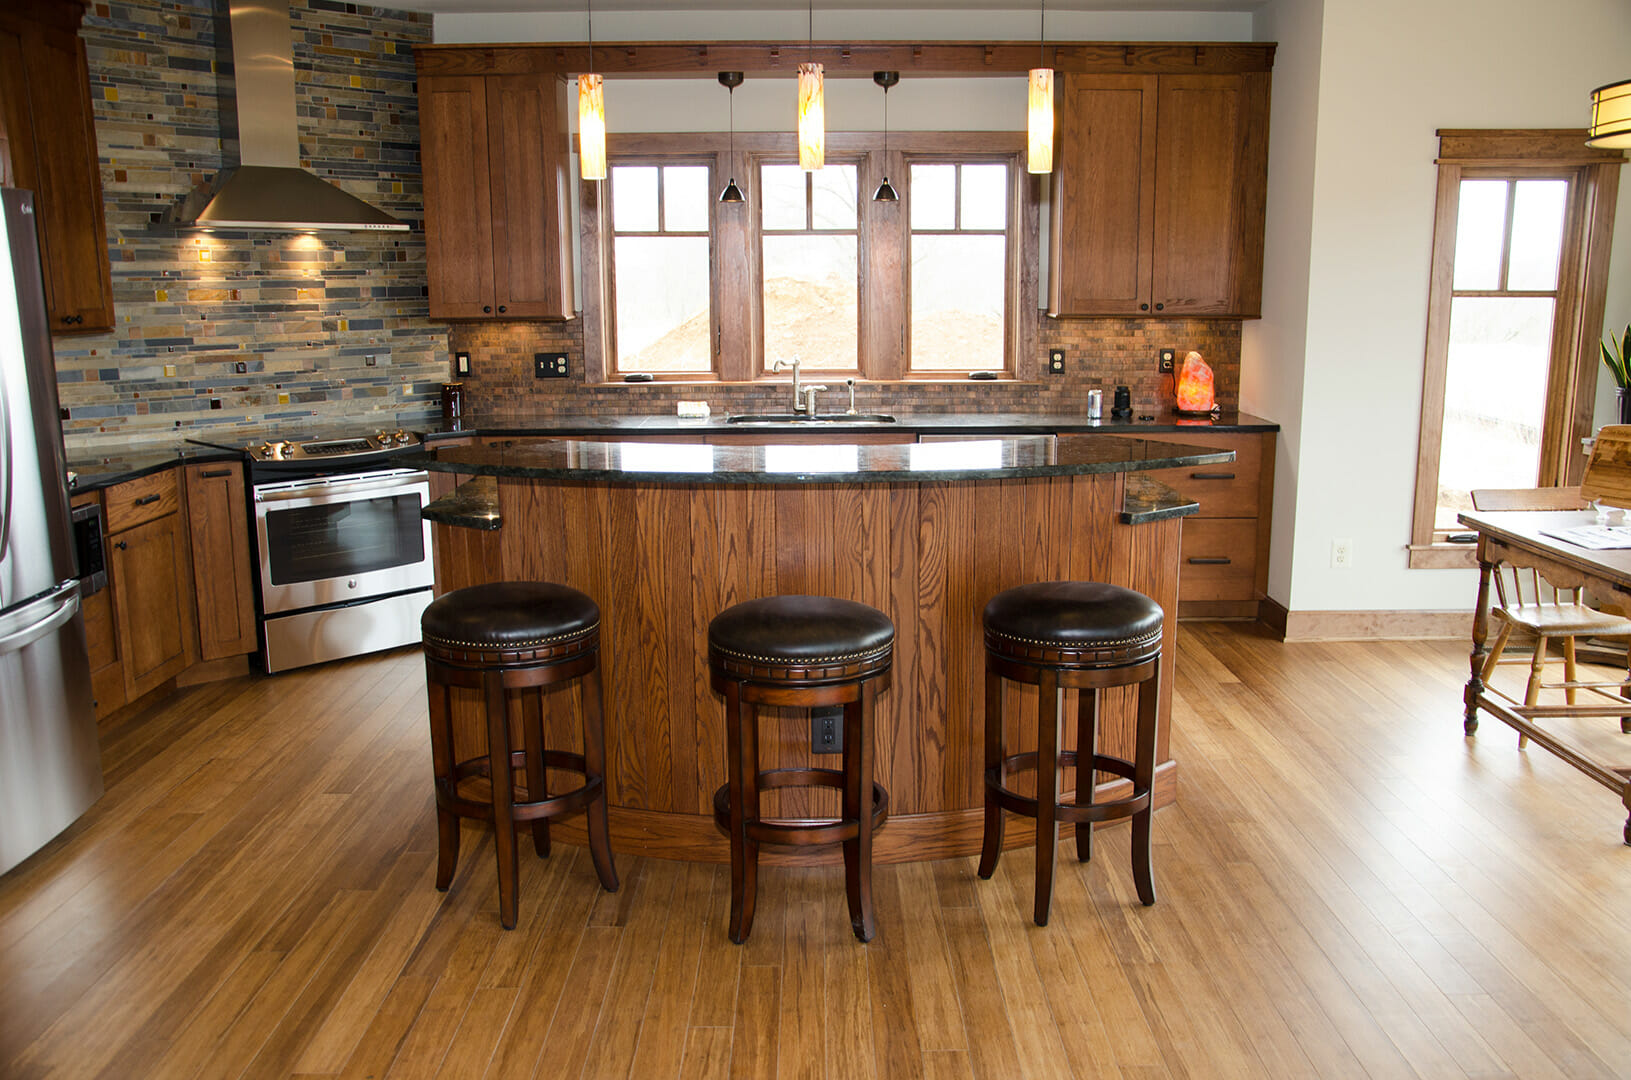 Rustic_Home_-_Int_Kitchen_01